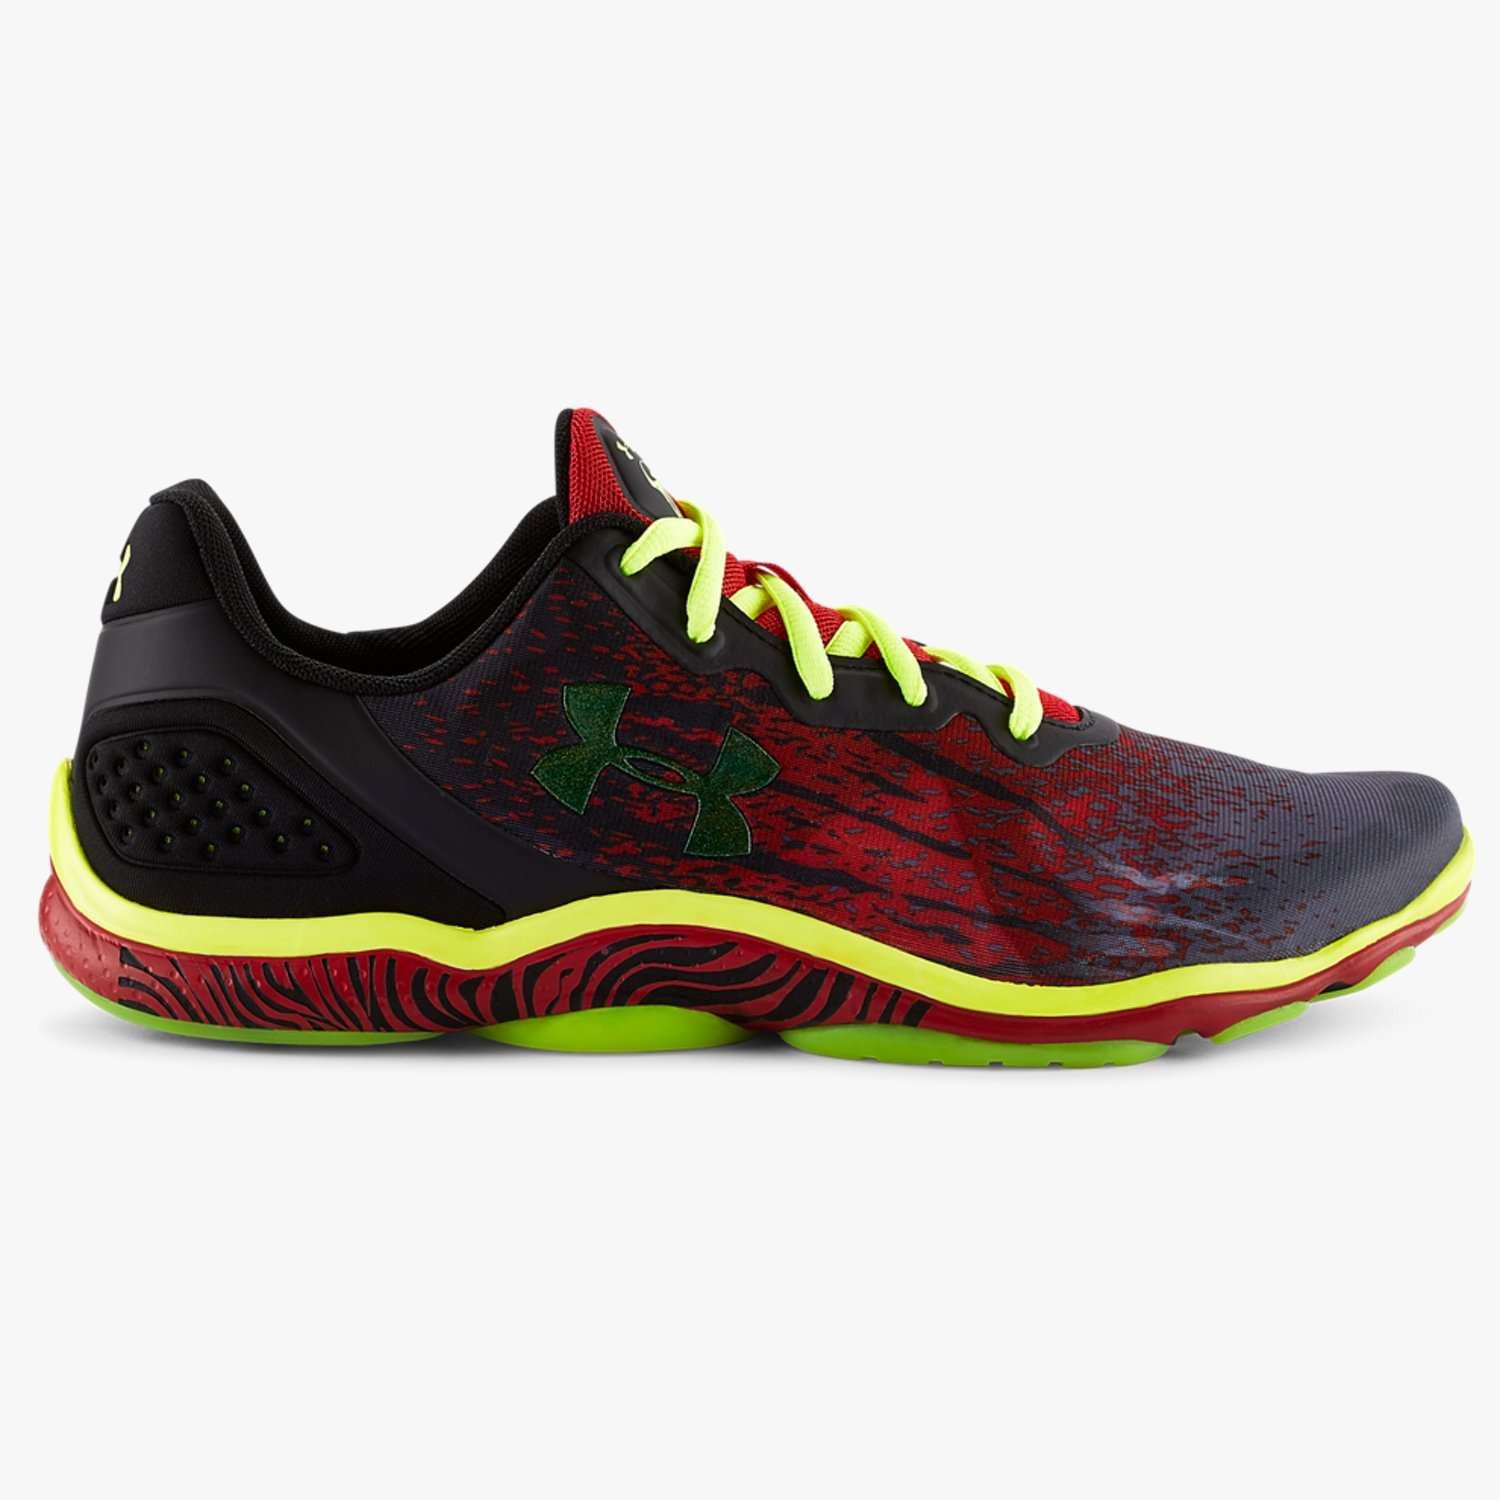 Under Armour UA Micro G Sting Training Shoes Red/Black-30